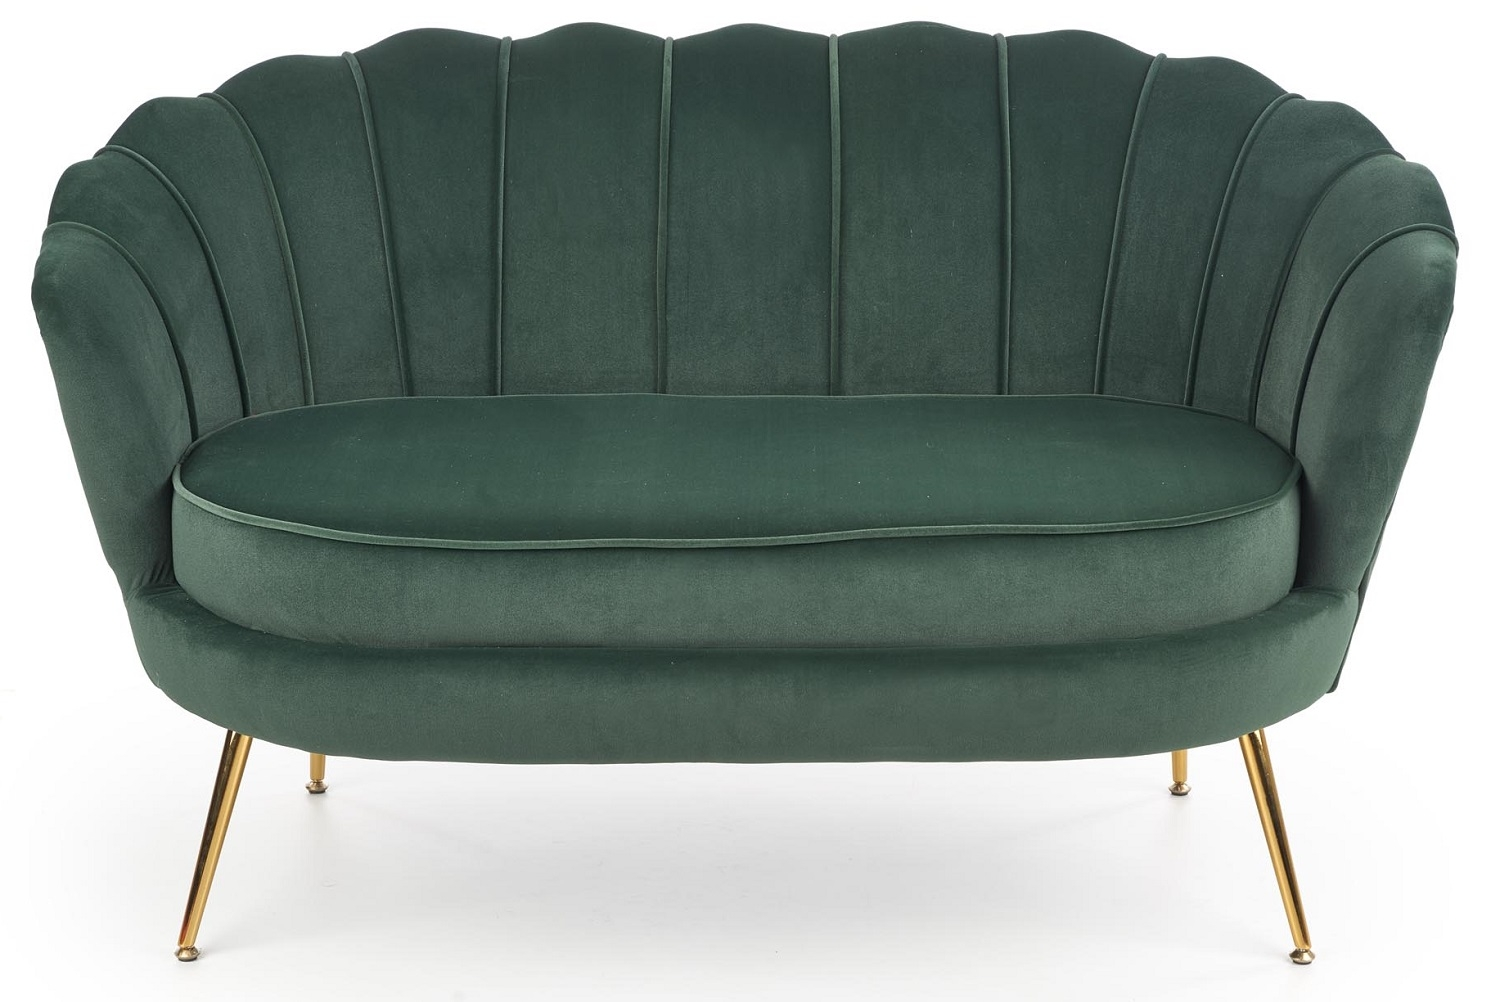 Fauteuil Amorinito 133 breed in groen